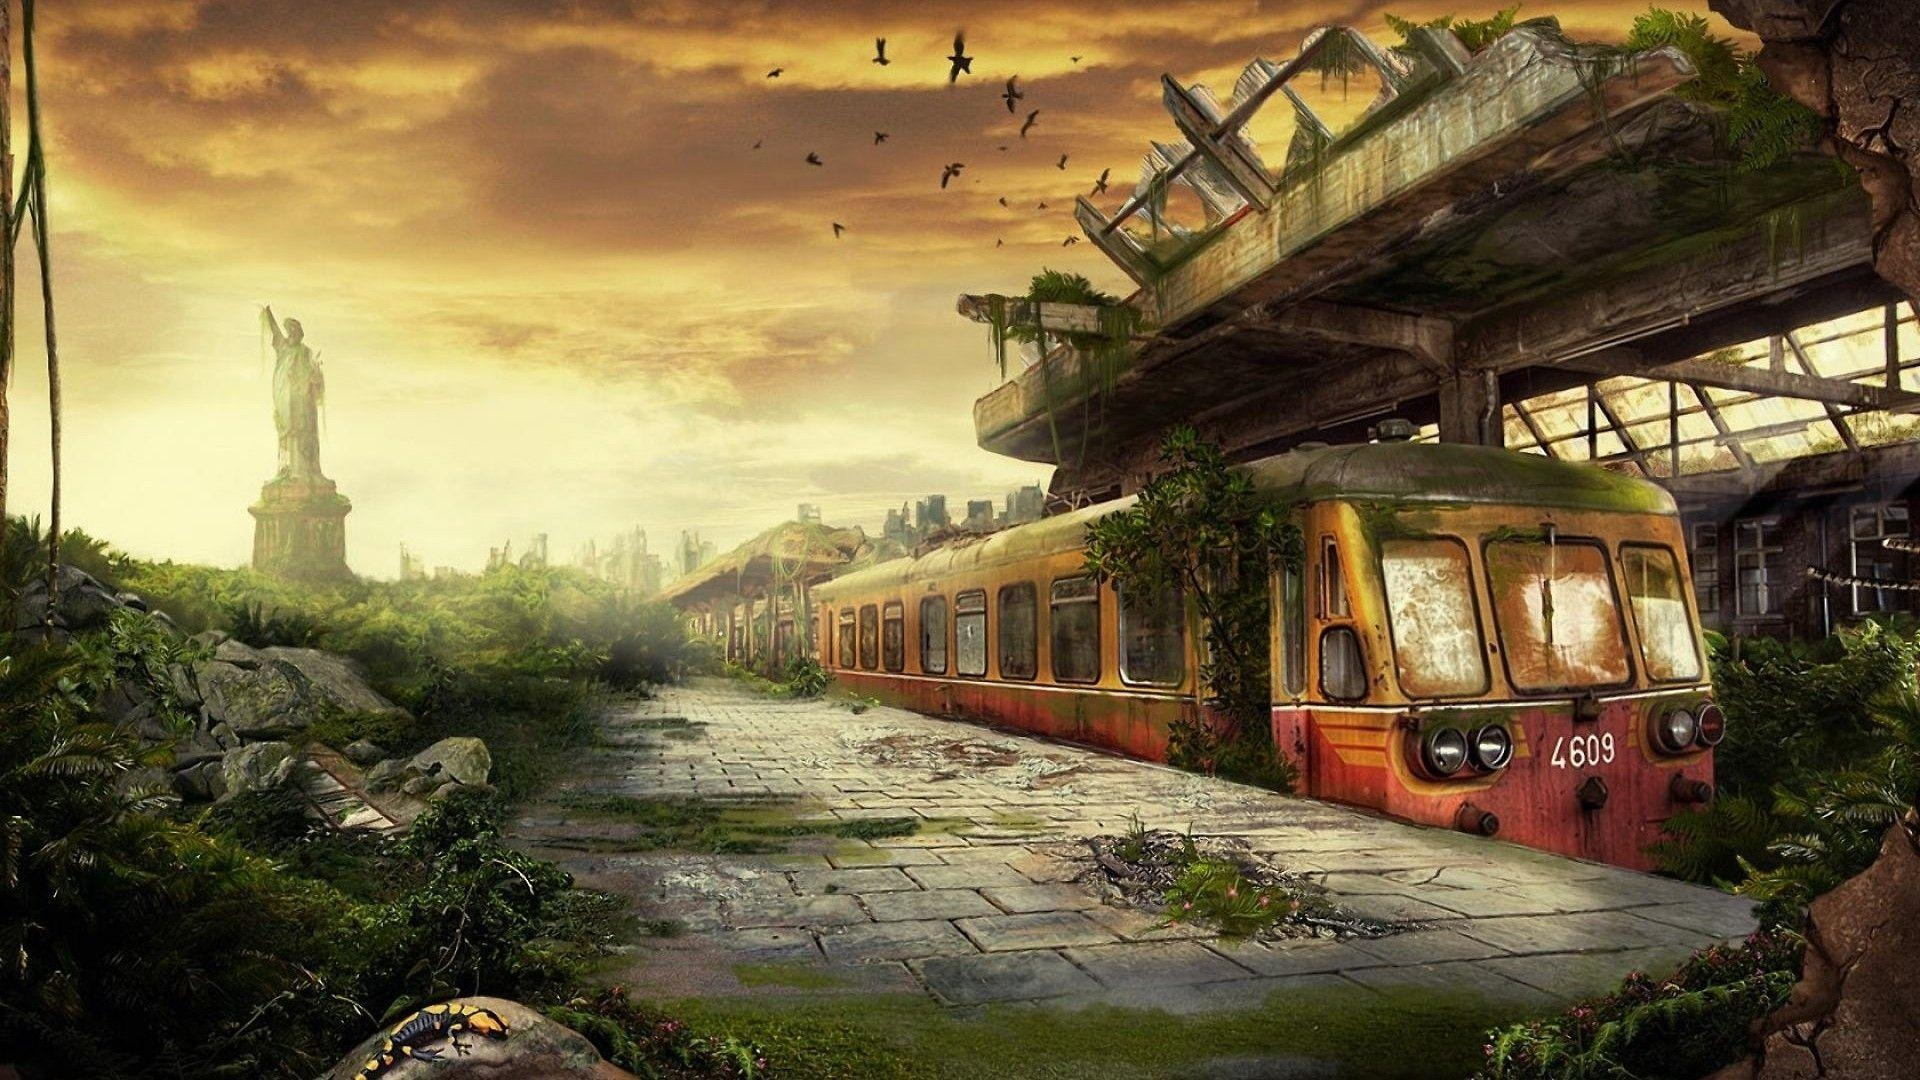 Post Apocalyptic Overgrown City cool background